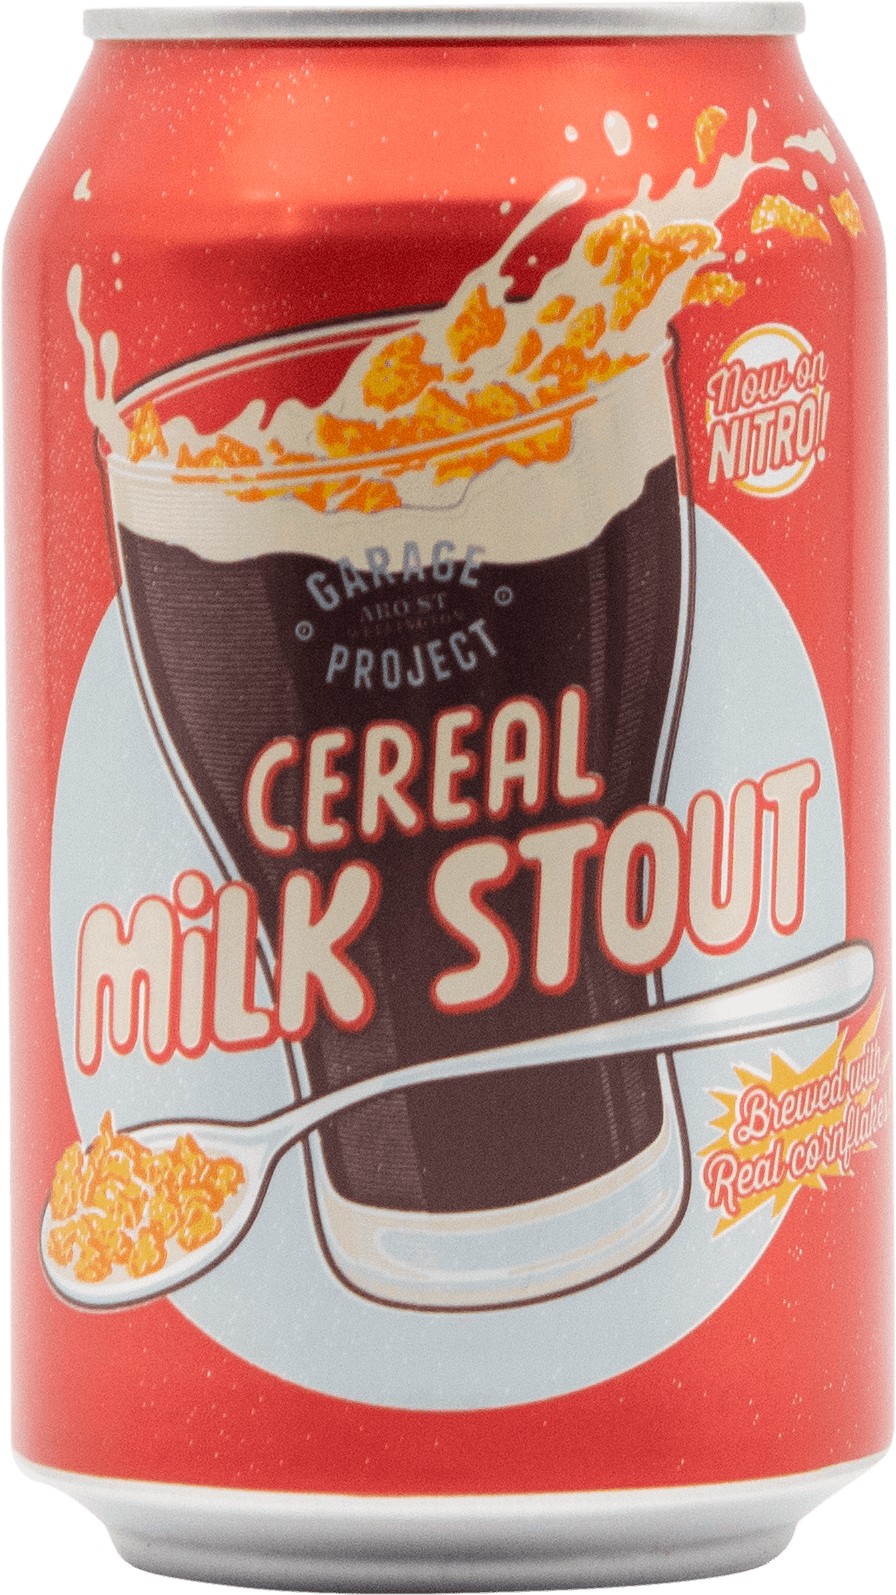 Garage Project Cereal Milk Stout